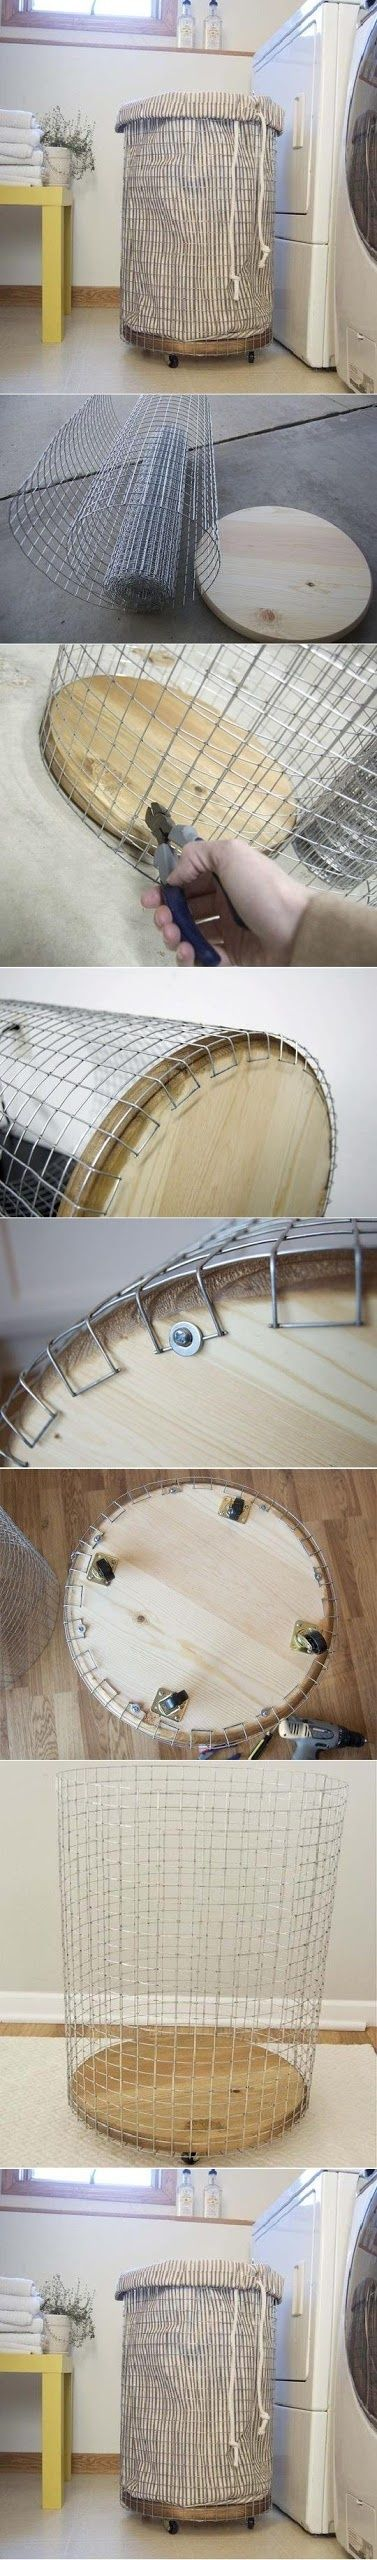 Make a Laundry Basket